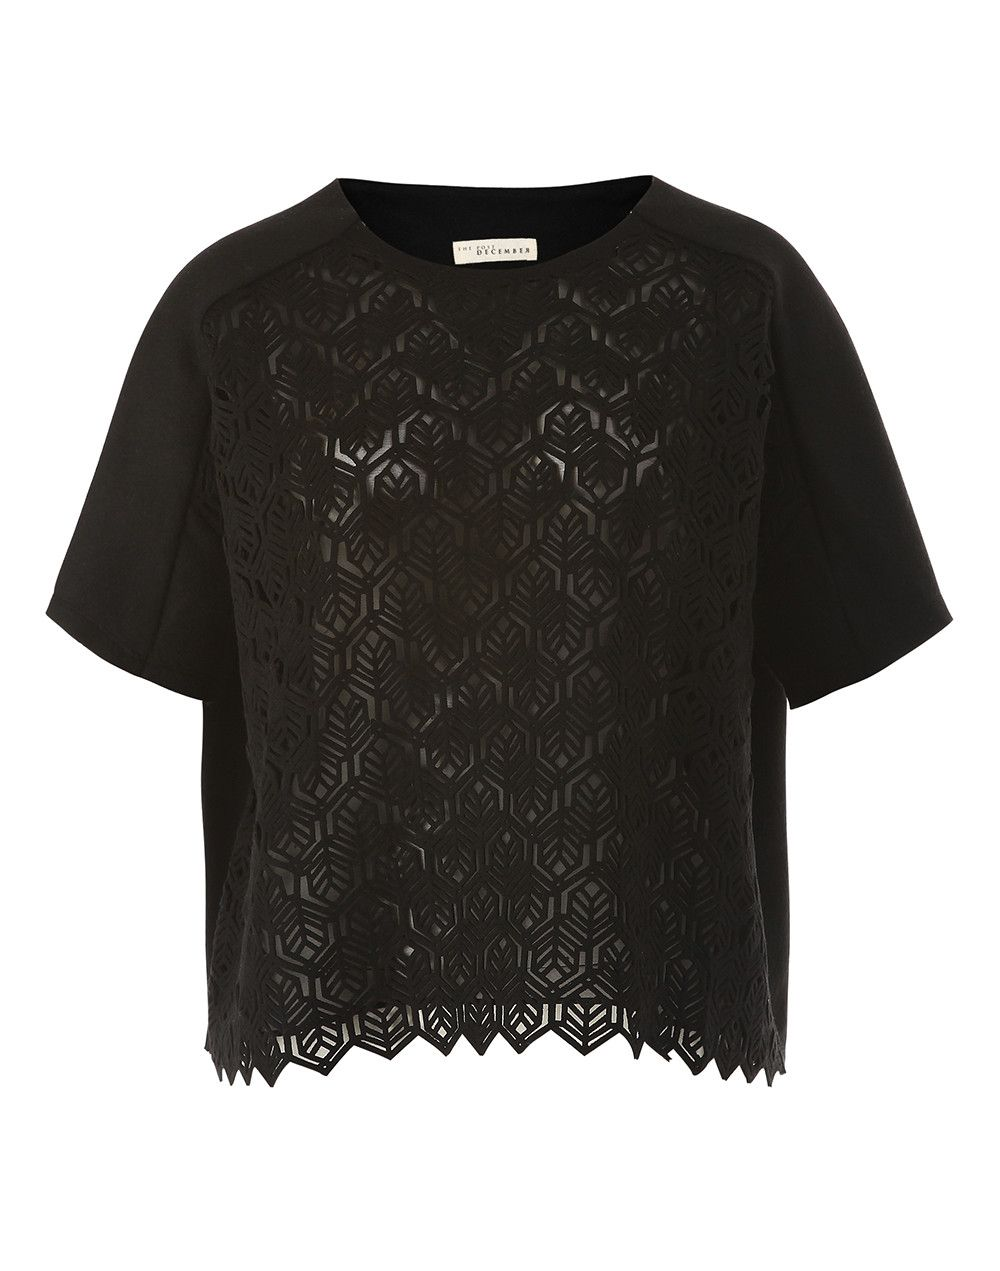 The Laser Cut Top